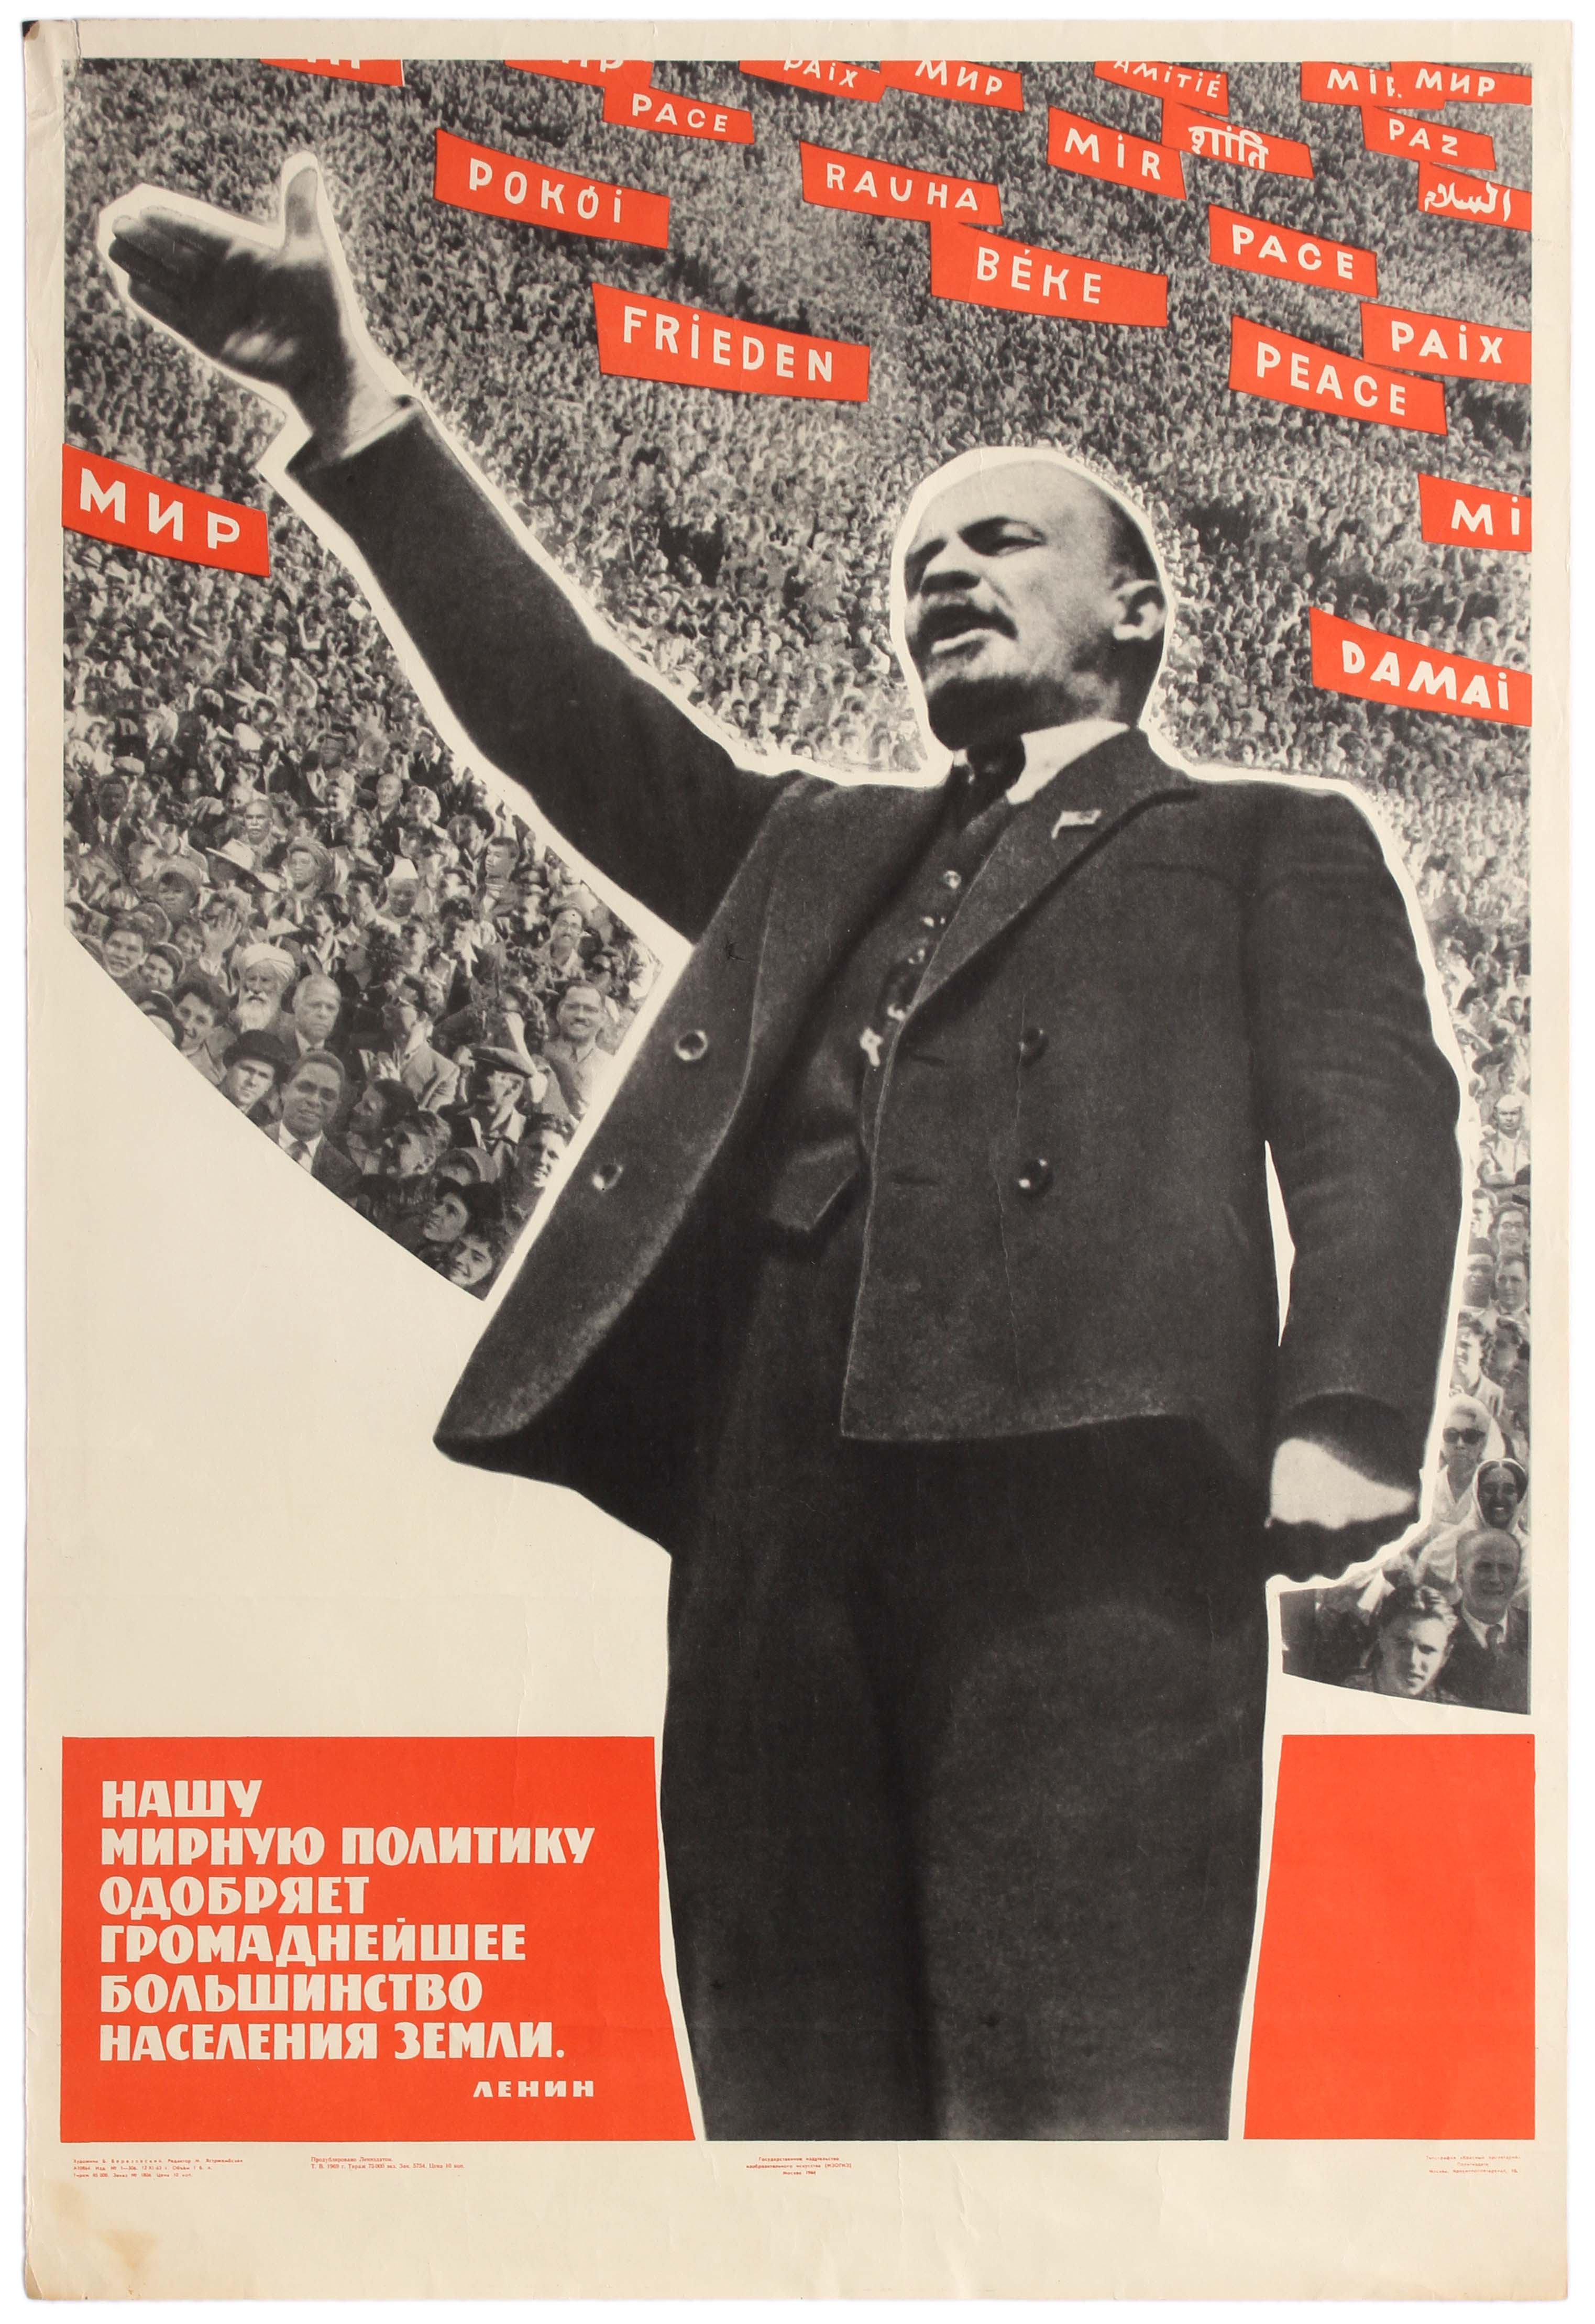 Lot 27 - Propaganda Poster Lenin Peace Policy Communism USSR